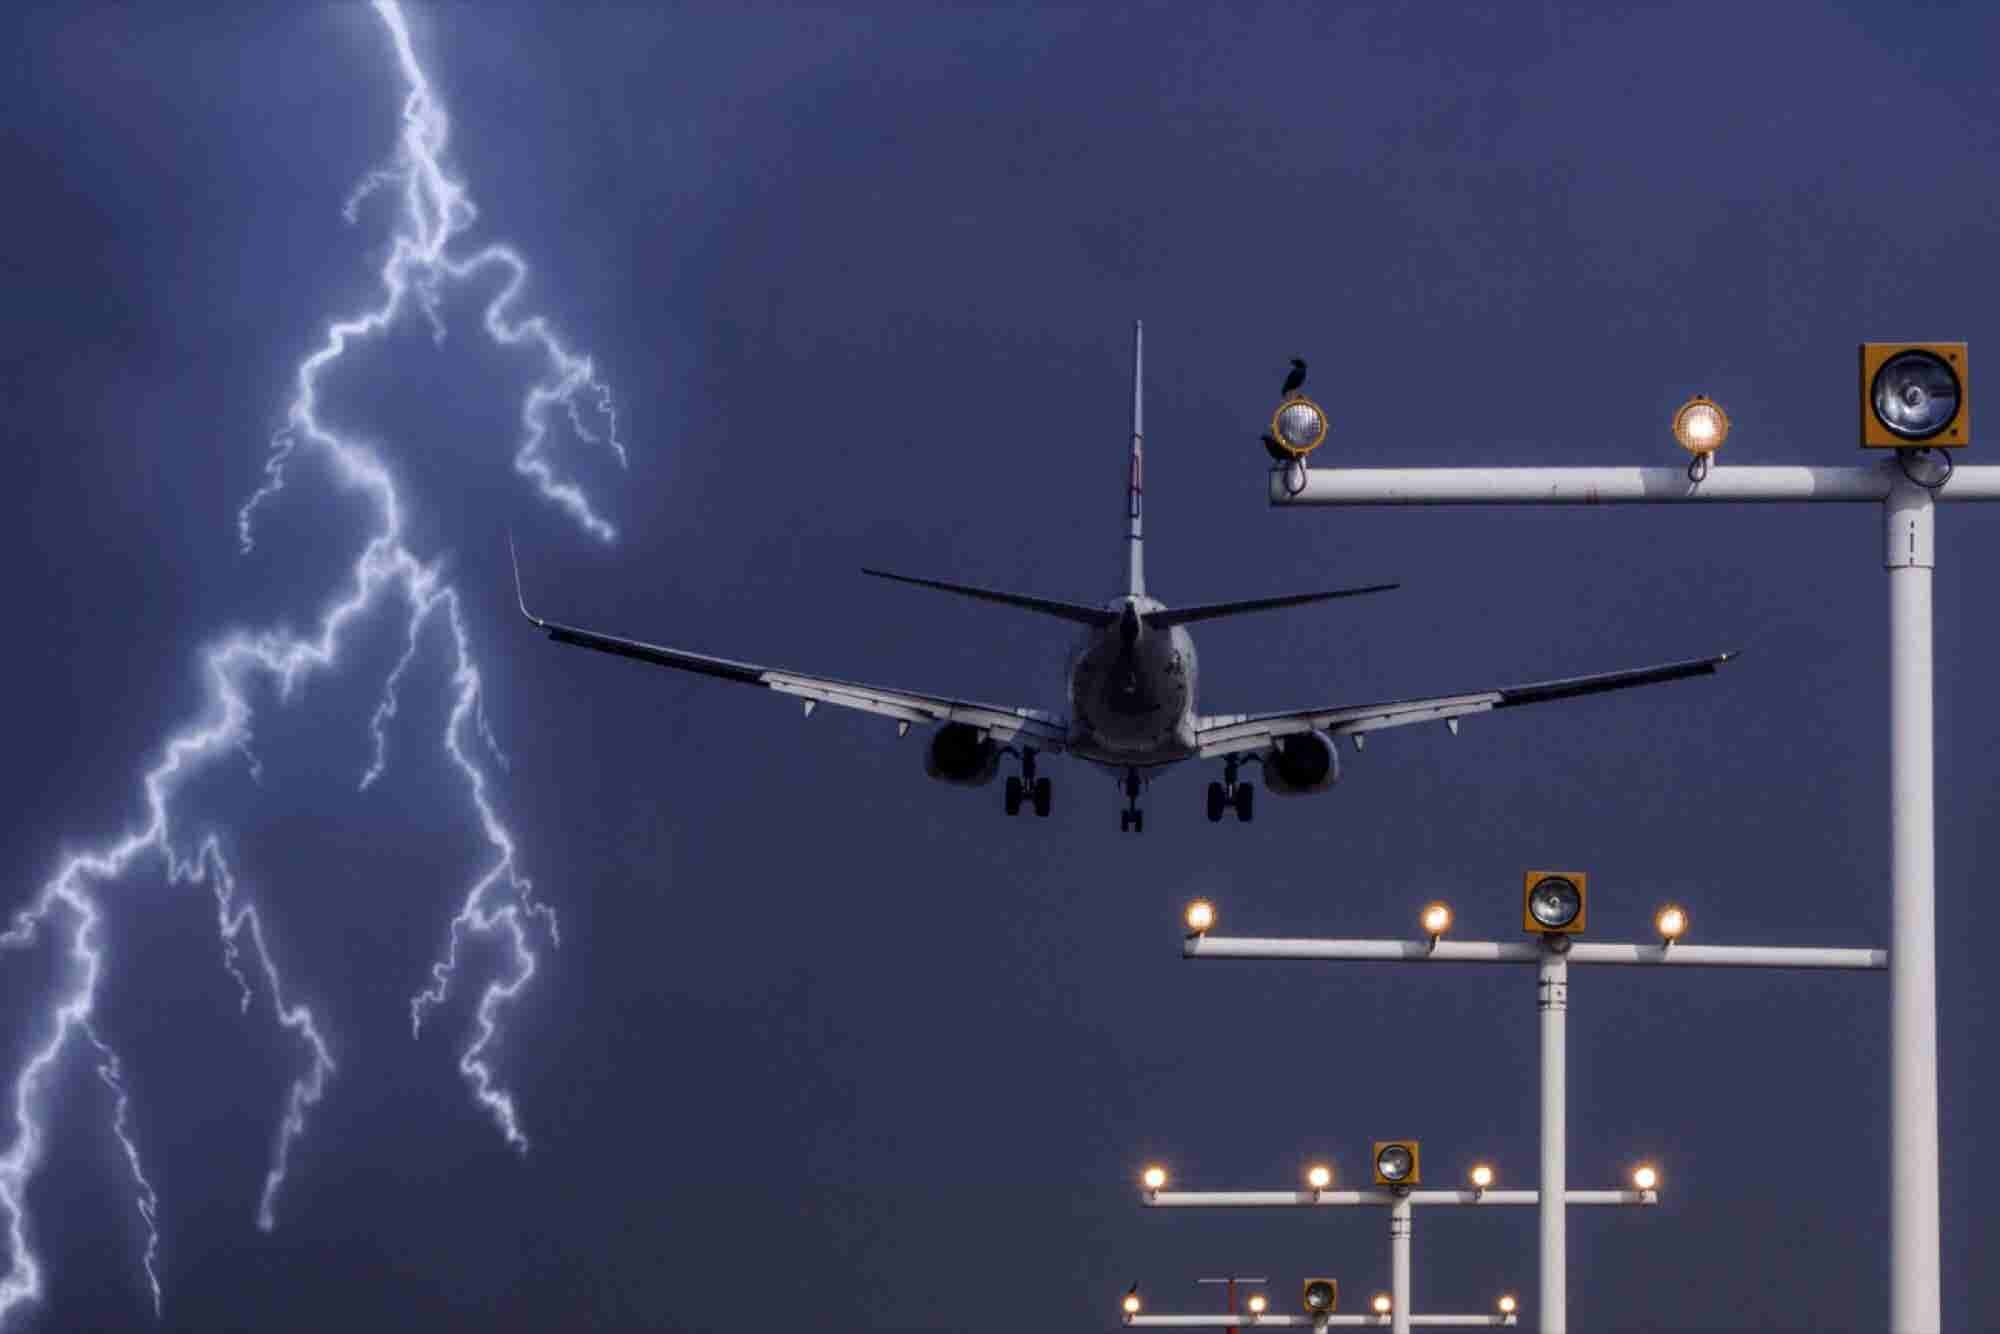 10 Things You Need To Do If You're Flying In Bad Weather